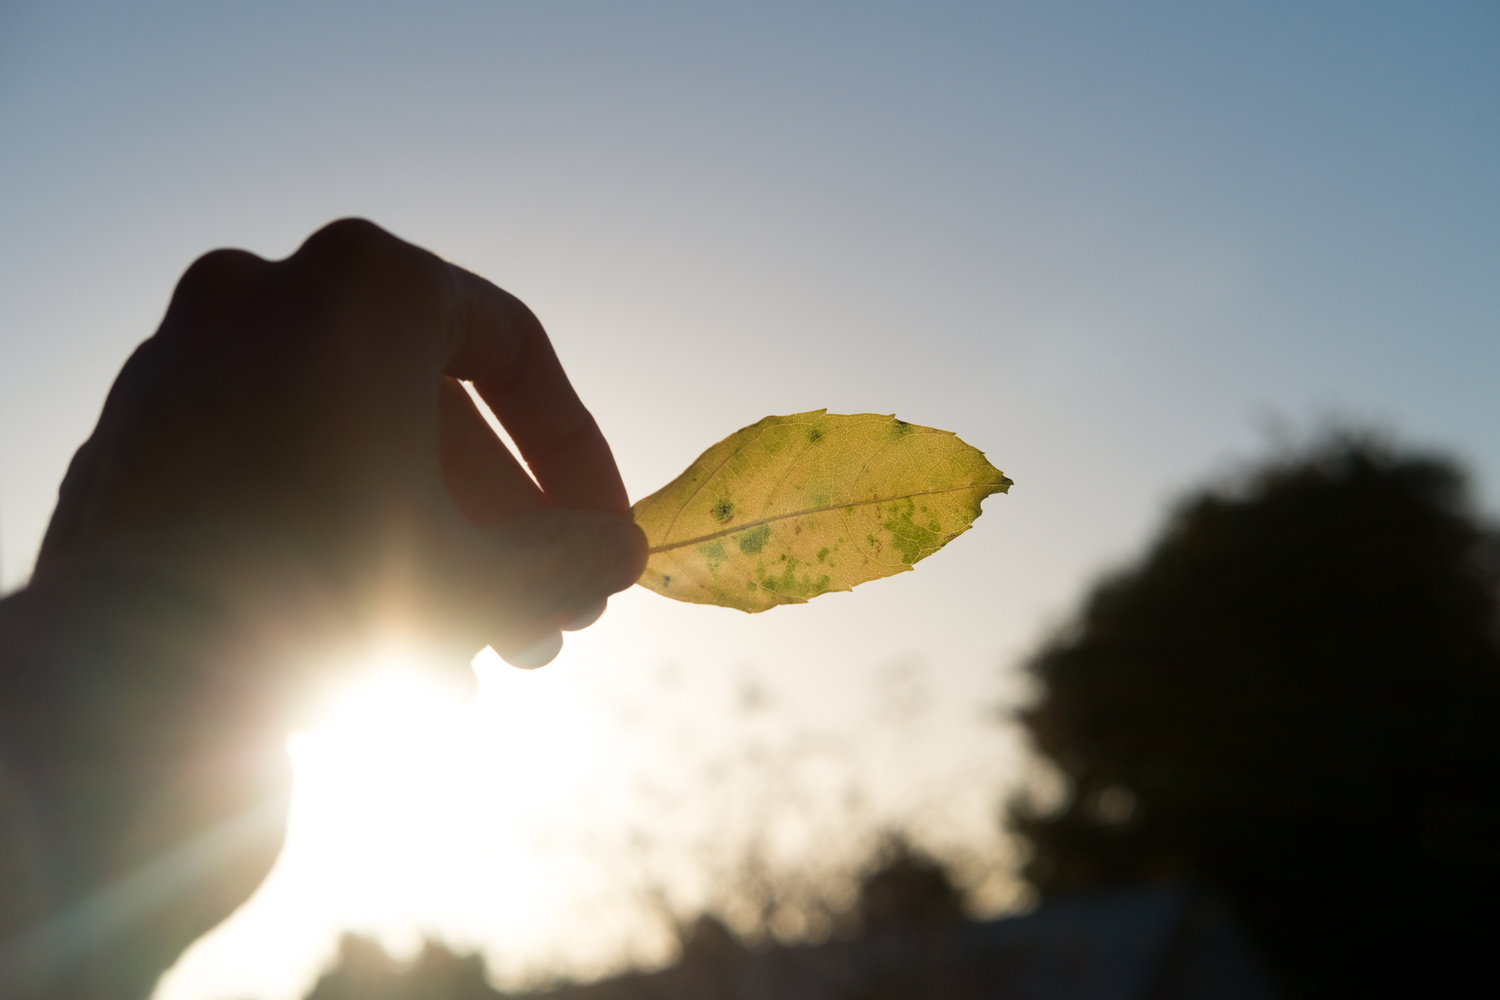 A person holding a leaf